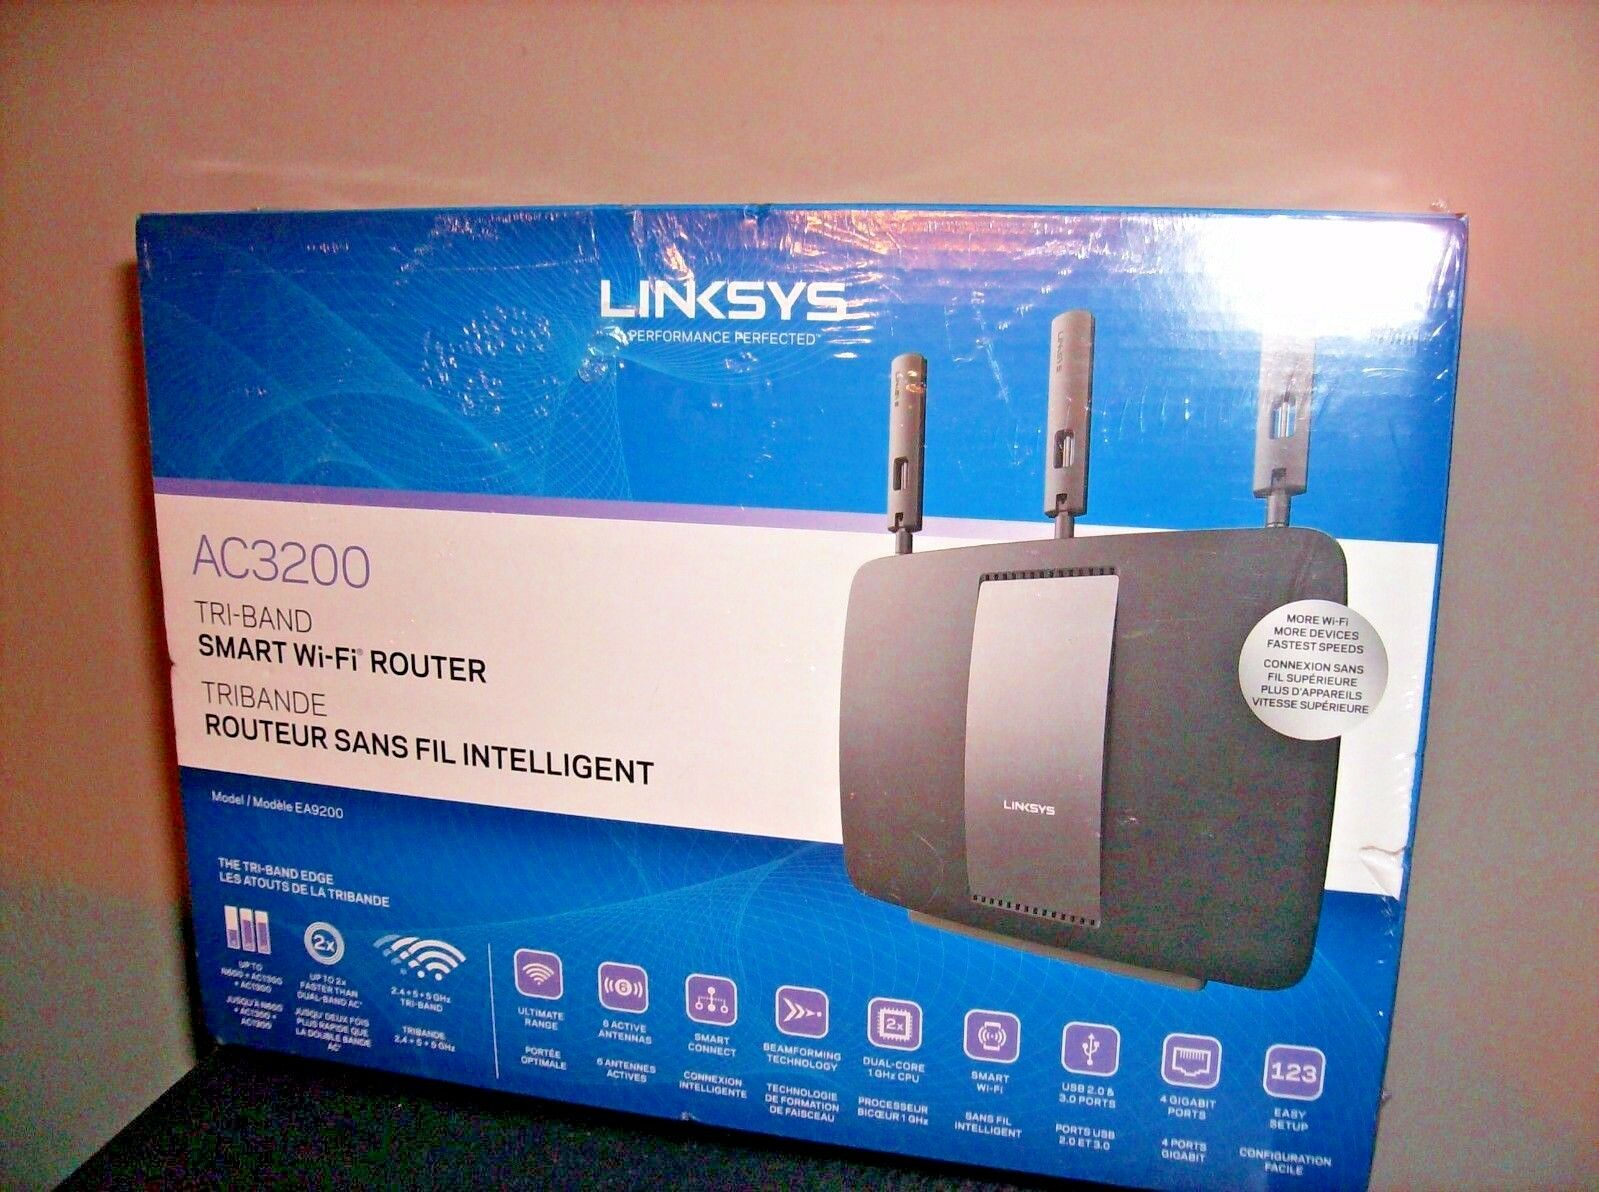 Linksys Ac3200 Tri Band Smart Wifi Router Ea9200 Ebay Asus Rt Wireless Gigabit Norton Secured Powered By Verisign